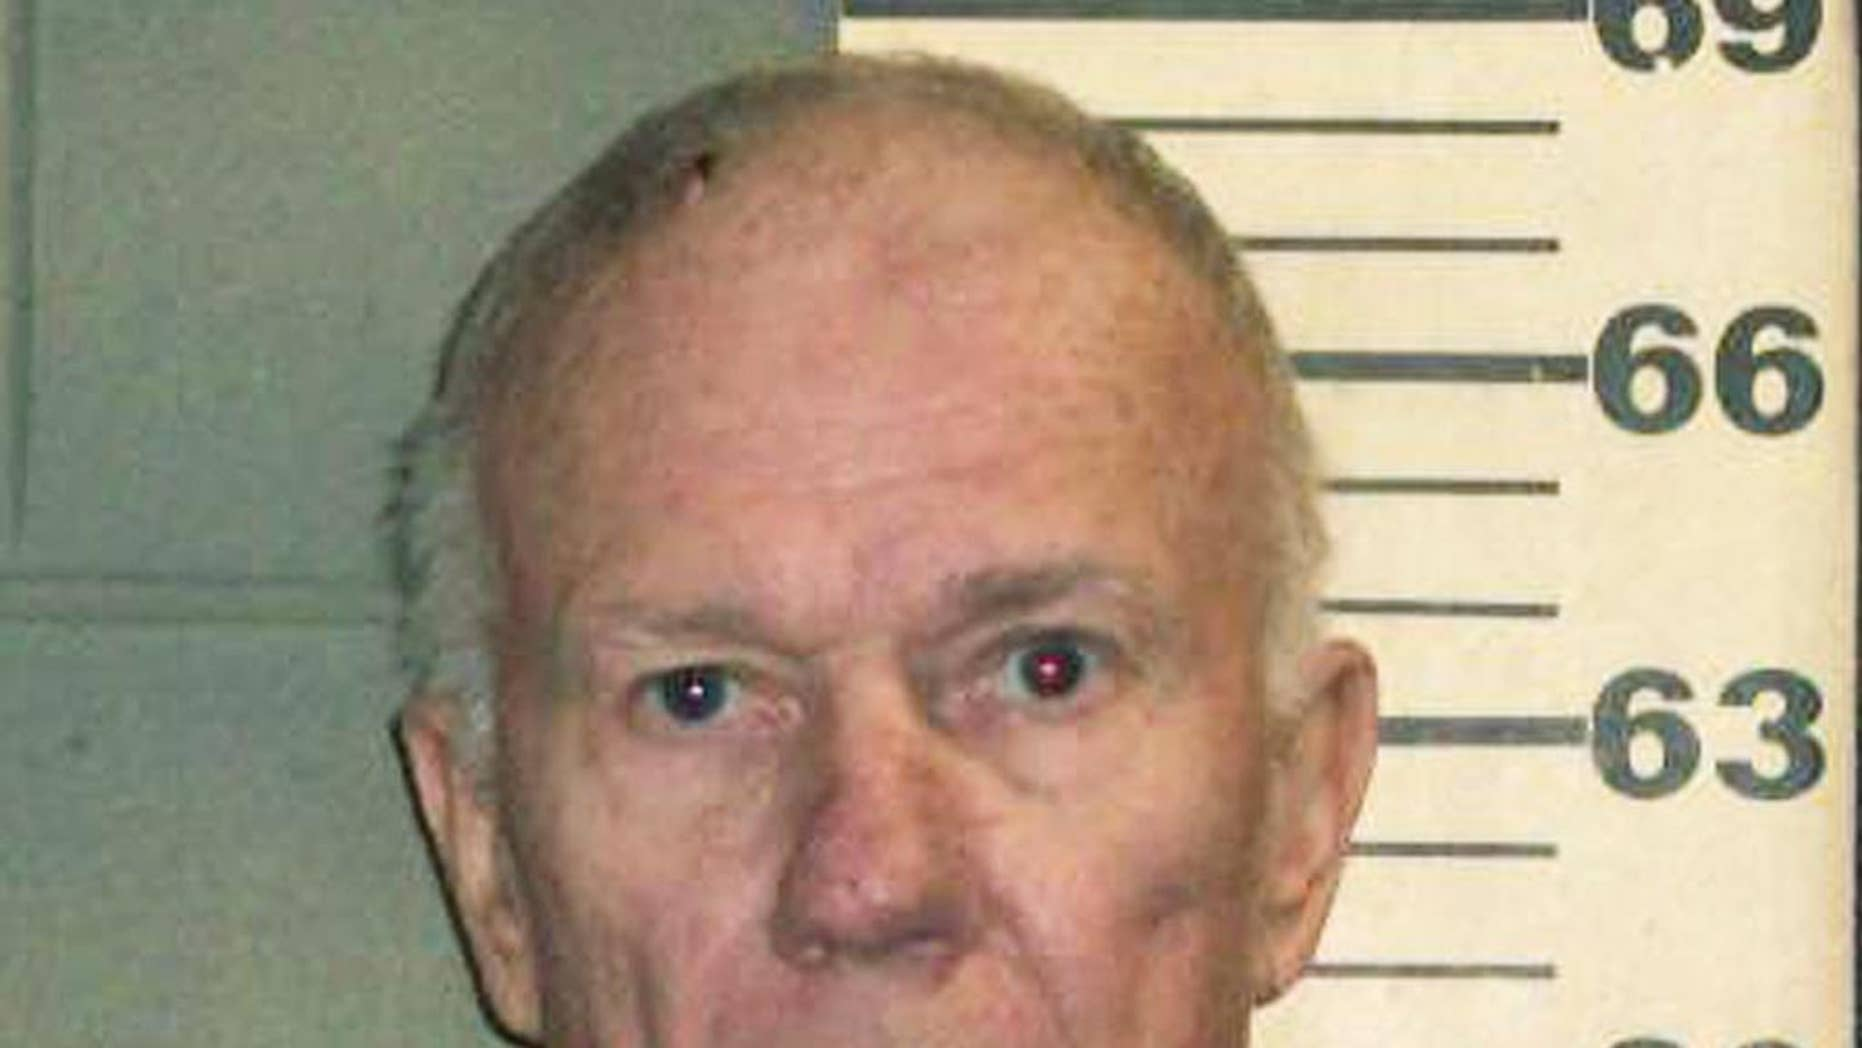 FILE - This undated file booking photo released by the Knox County Sheriff's Office shows Charles Black, found guilty in a Rockland, Maine, court Monday, July 21, 2014, of six felonies for bashing his then-wife Lisa Zahn on the head with a rock and pushing her off a cliff in in April 2011 in Maine's Camden Hills State Park. Both Zahn and Black, retired teachers from Kansas who had moved to Maine, tumbled down the mountainside and both were hospitalized for more than a week. They had argued over an affair Black had with an Arizona woman and how he spent money from the inheritance, which was from her father.(AP Photo/Knox County Sheriff's Office, File)